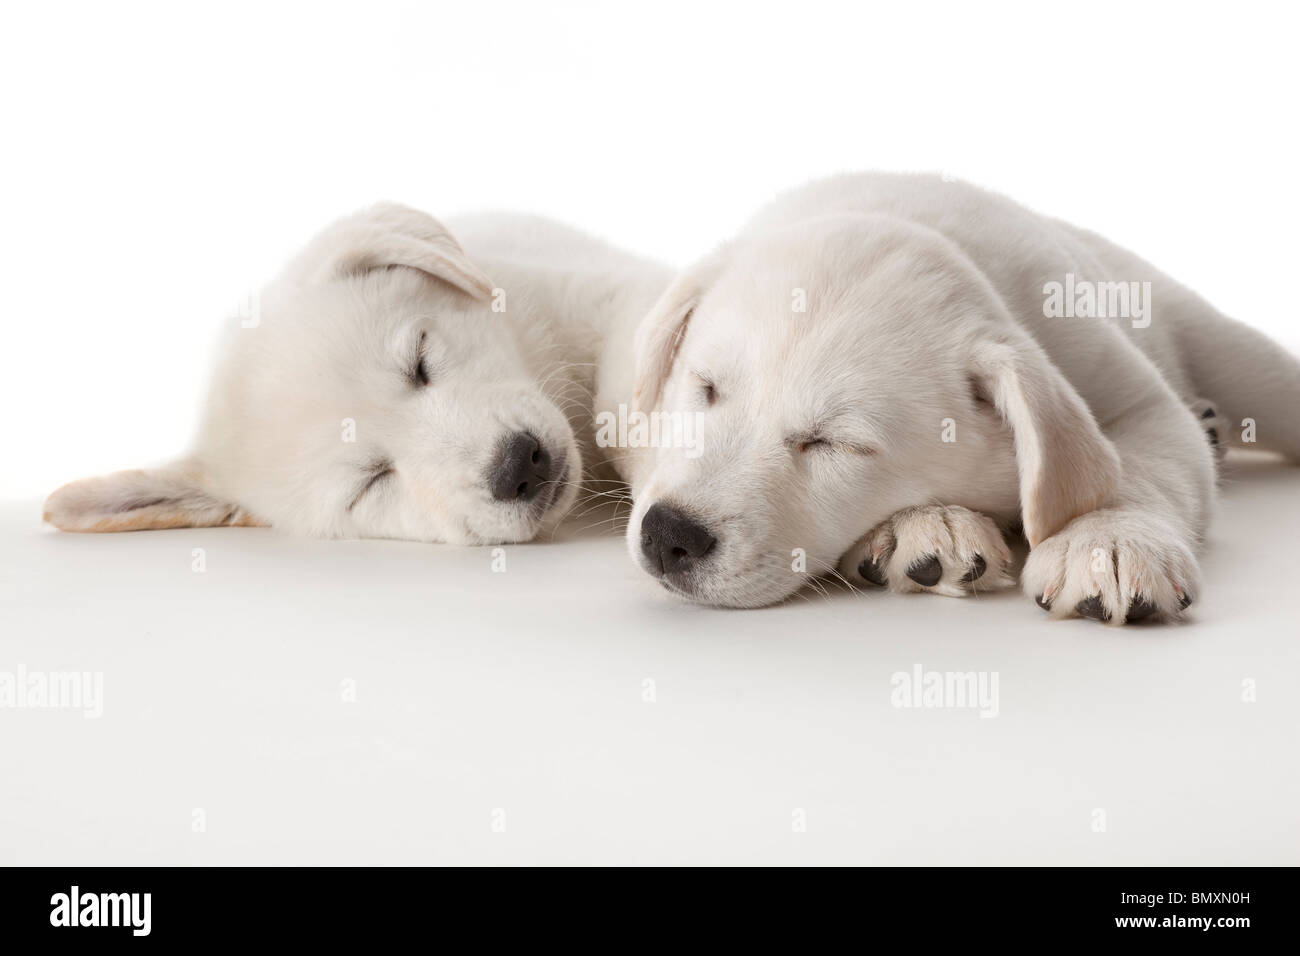 Two cute white puppies sleeping on white background Stock